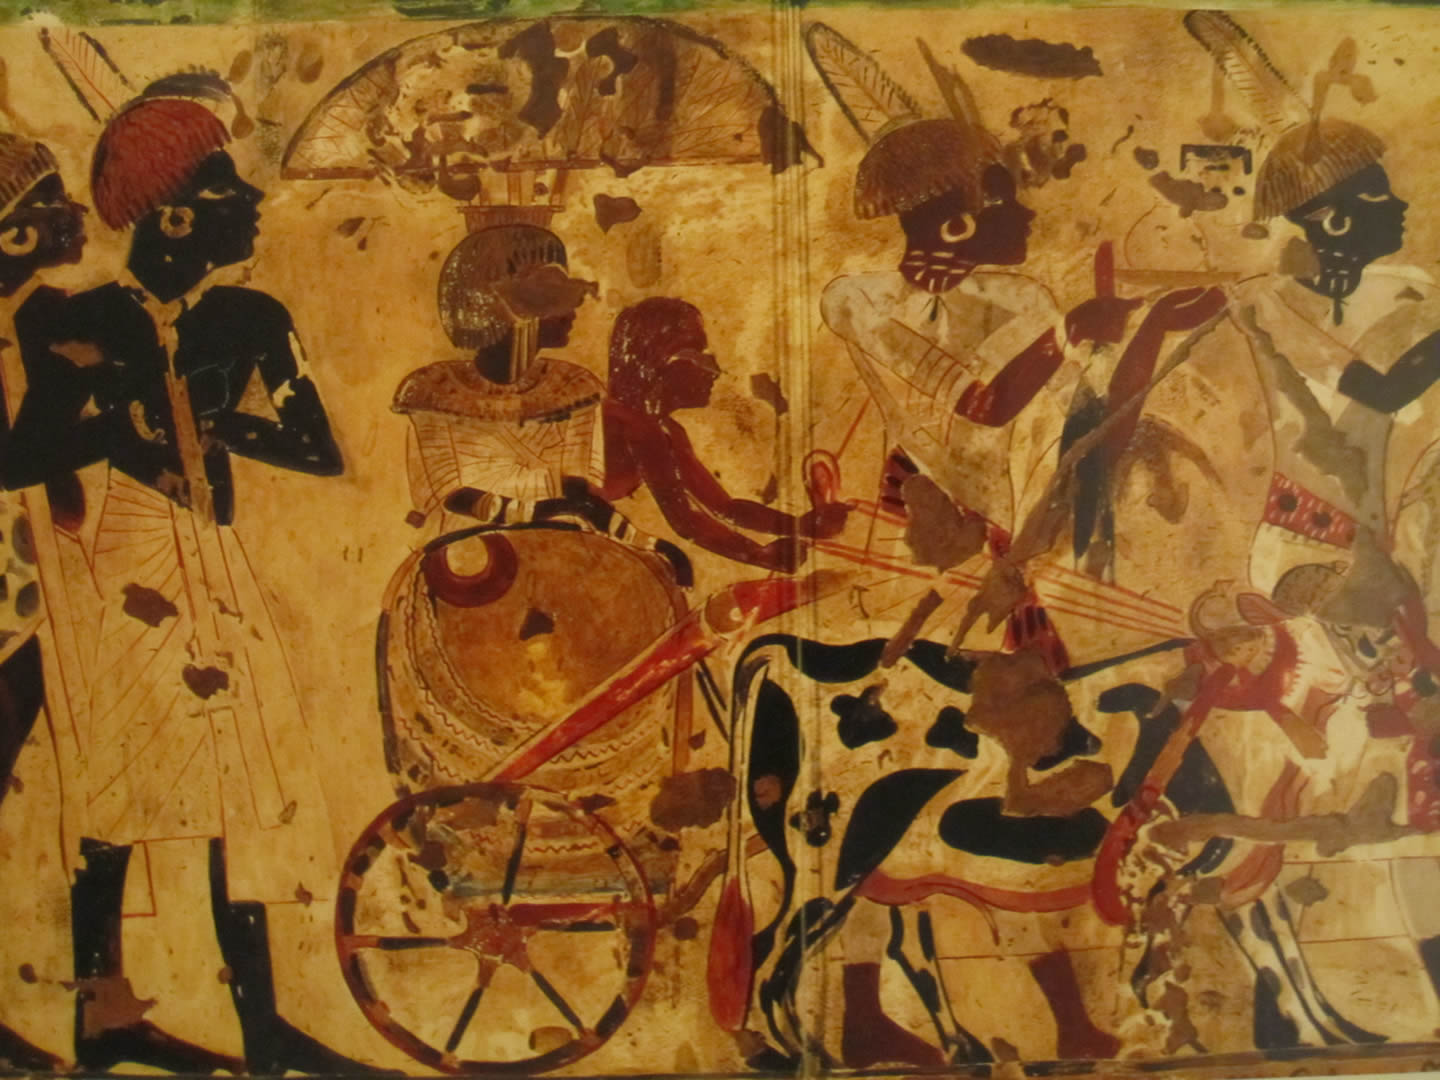 Nubians bringing tribute for King Tut, Tomb of Huy